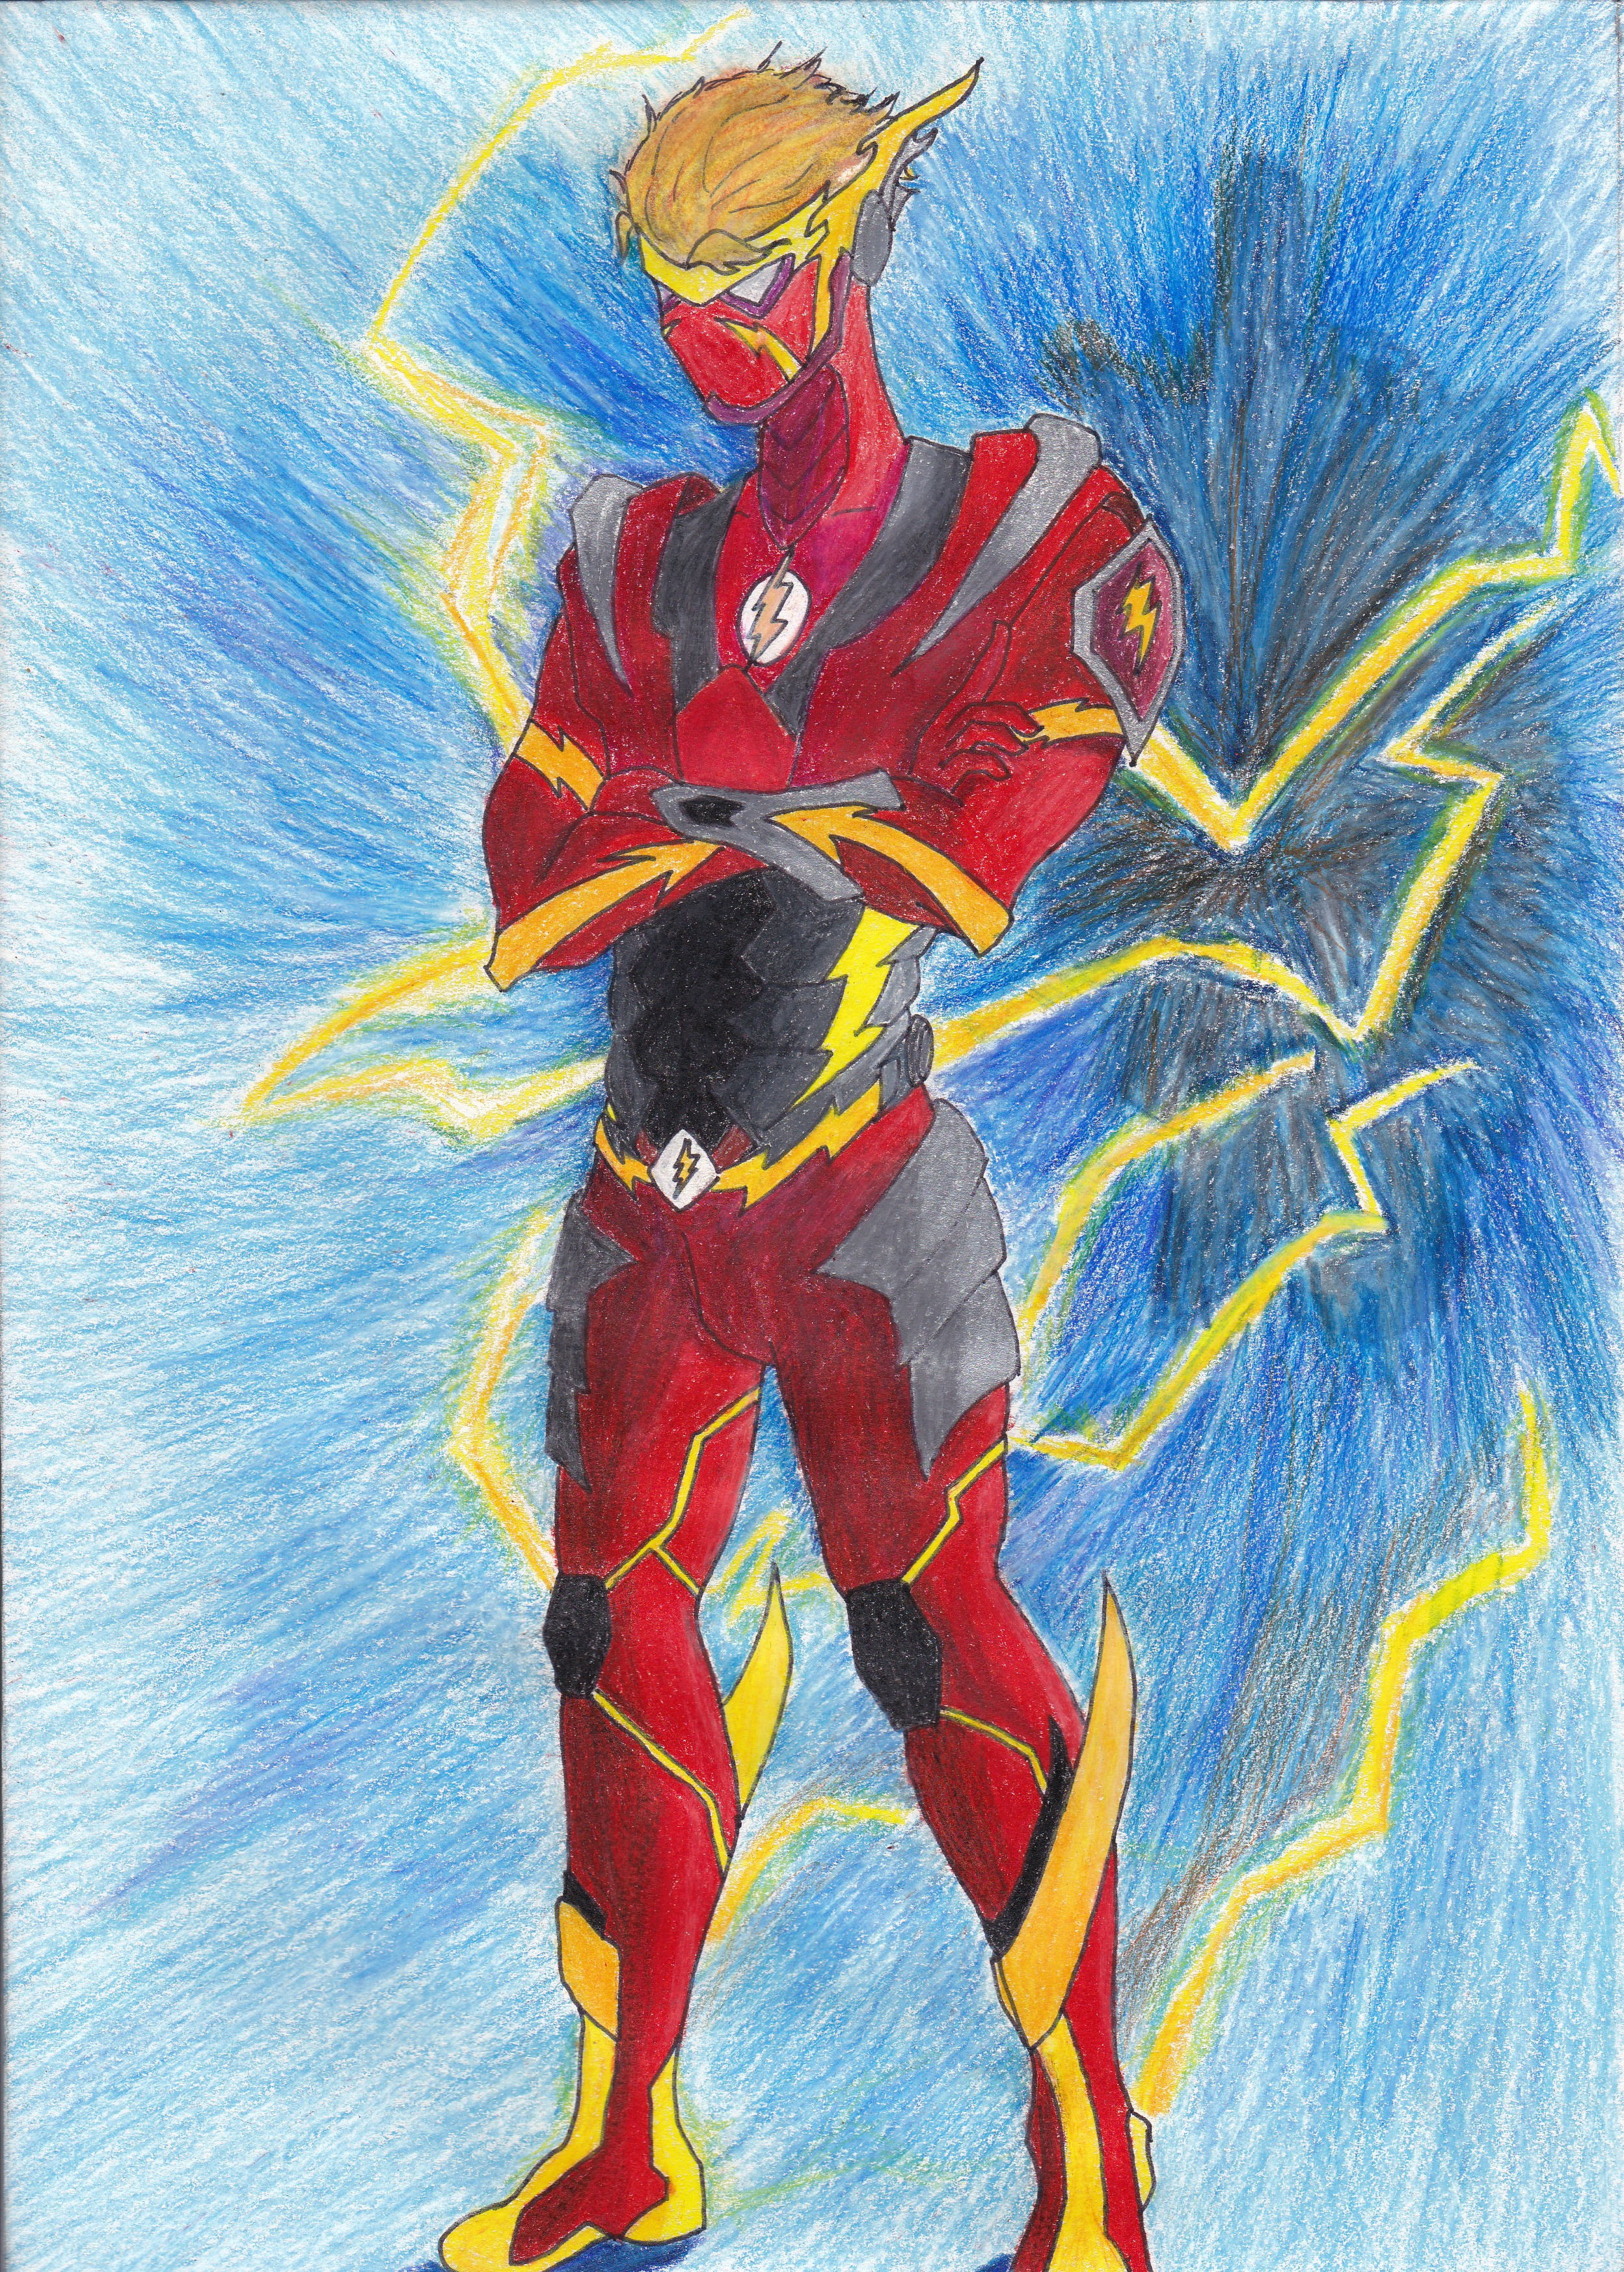 Master of The Speed Force